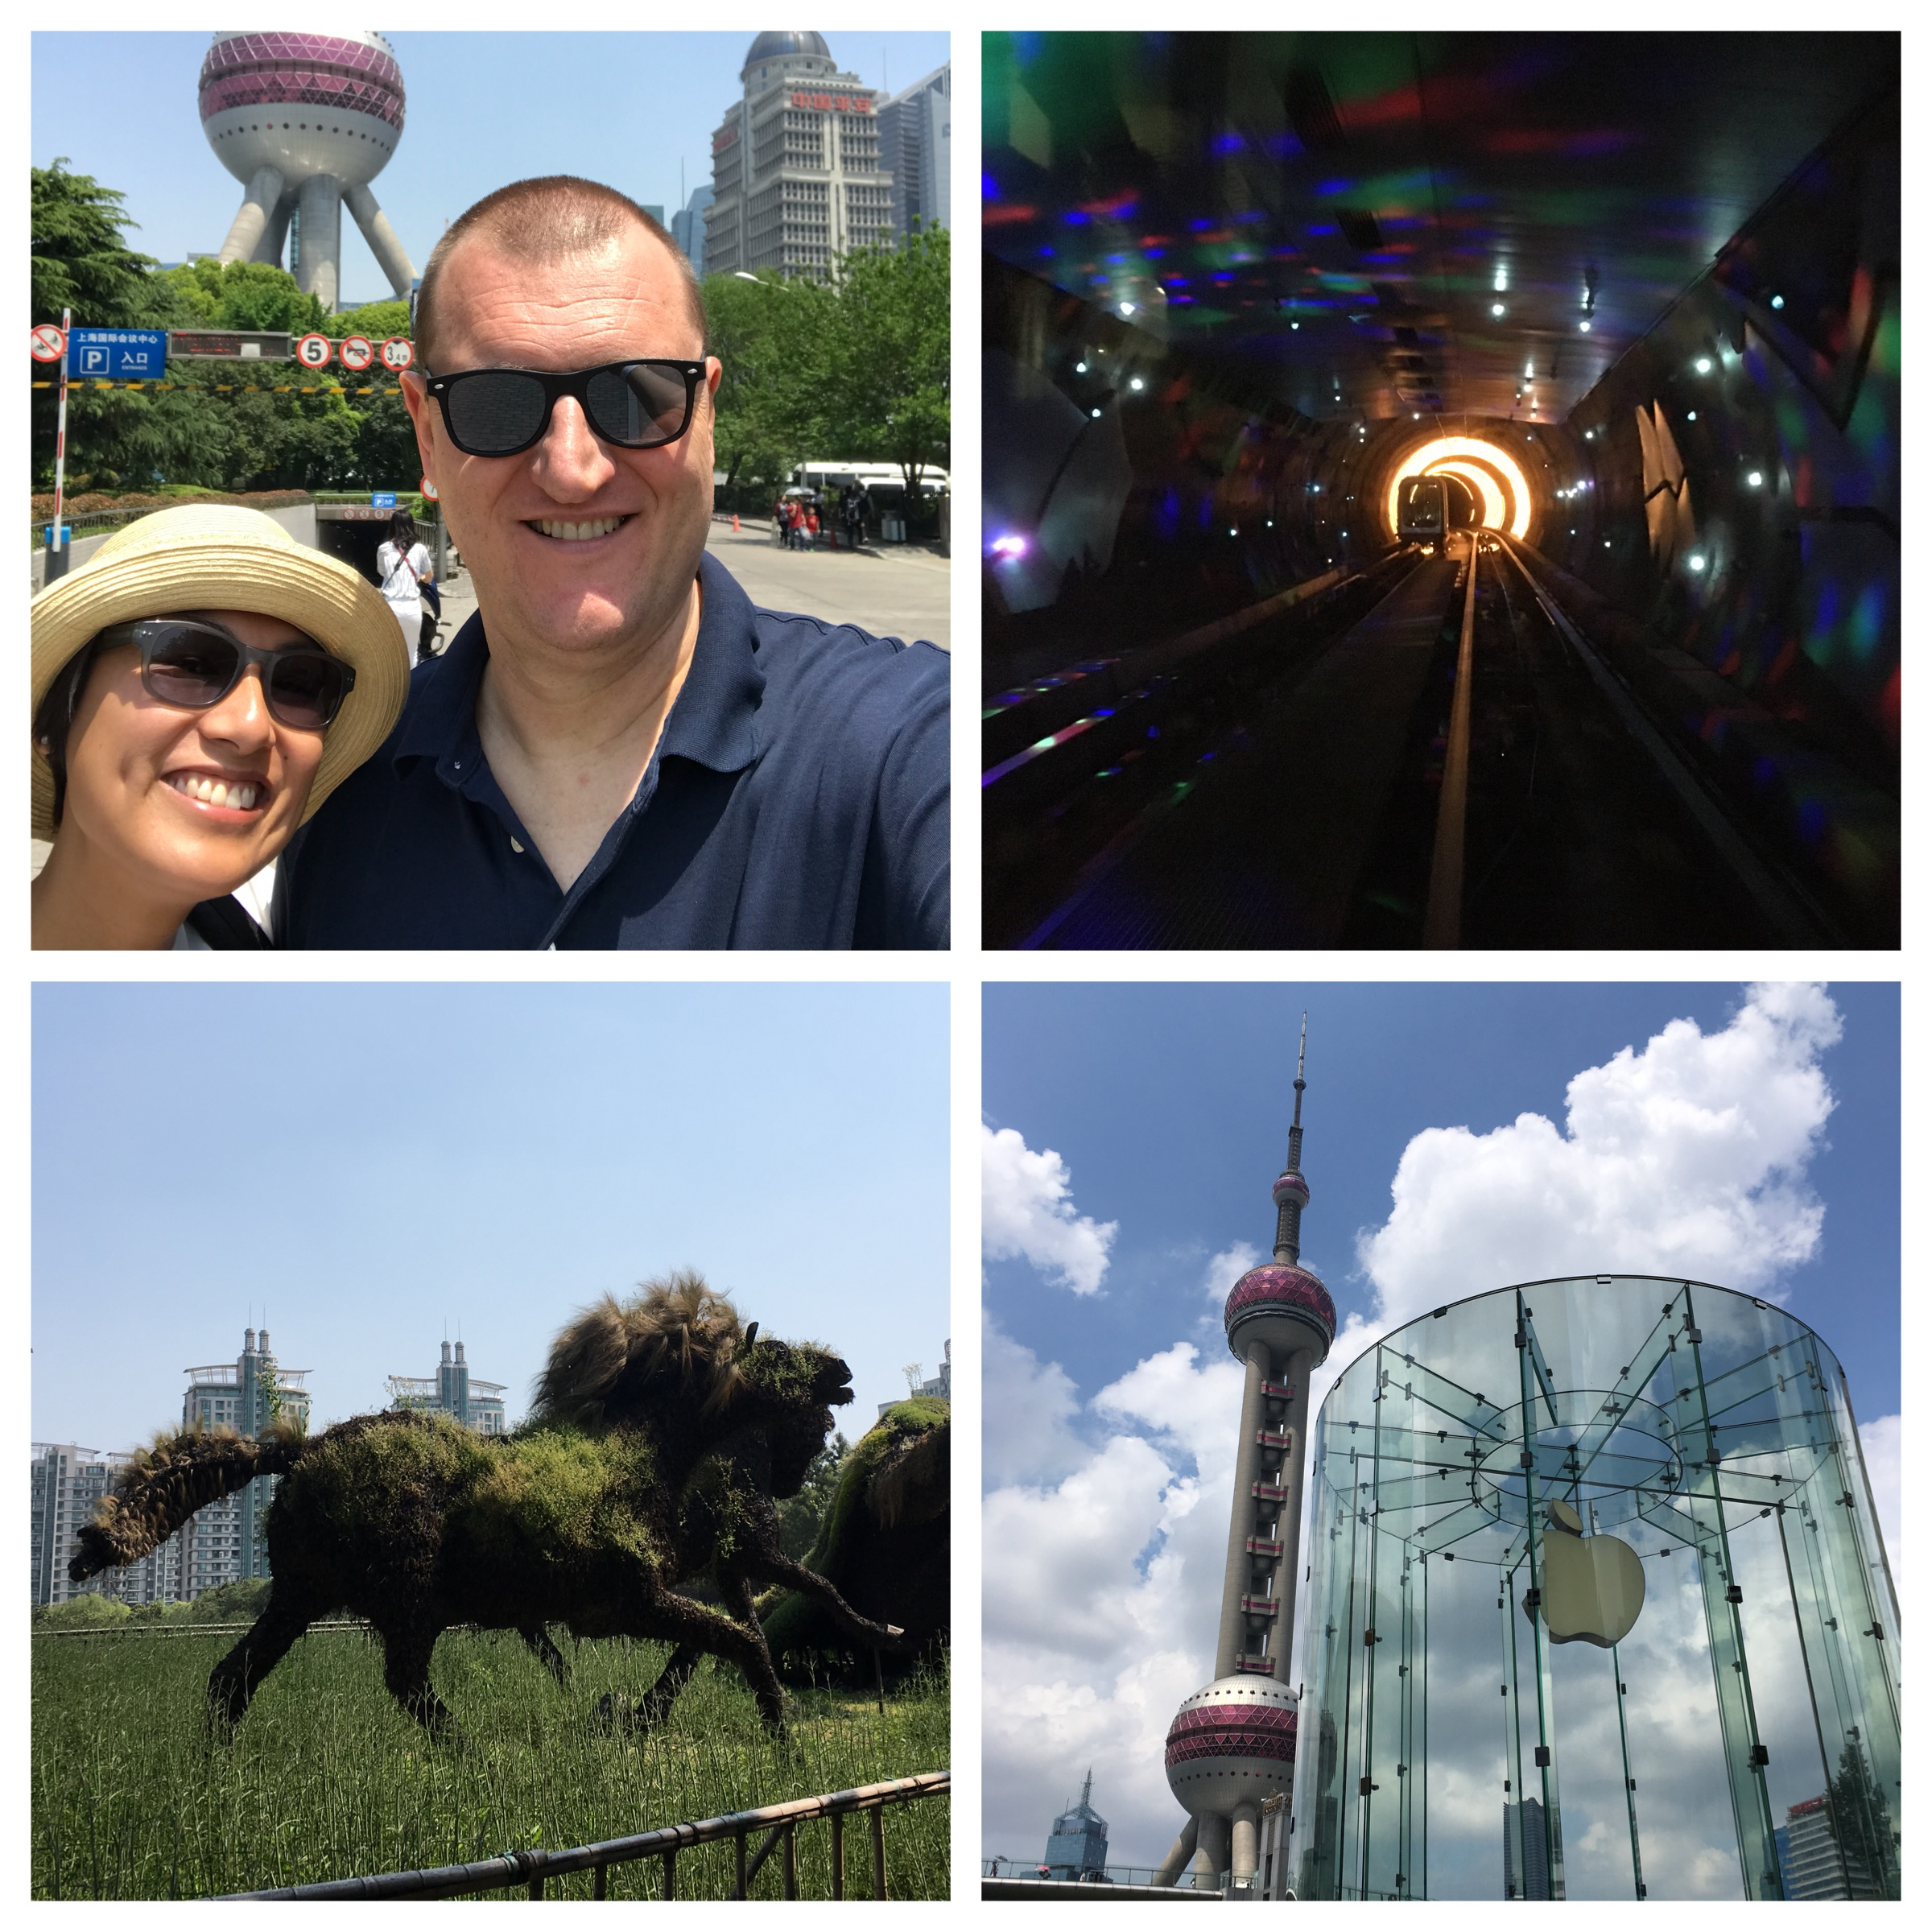 Top left and clockwise: Being tourists at the Oriental Pearl Tower, the psychedelic Sightseeing Tunnel, Christoph's favourite store and garden sculptures at Century Park.